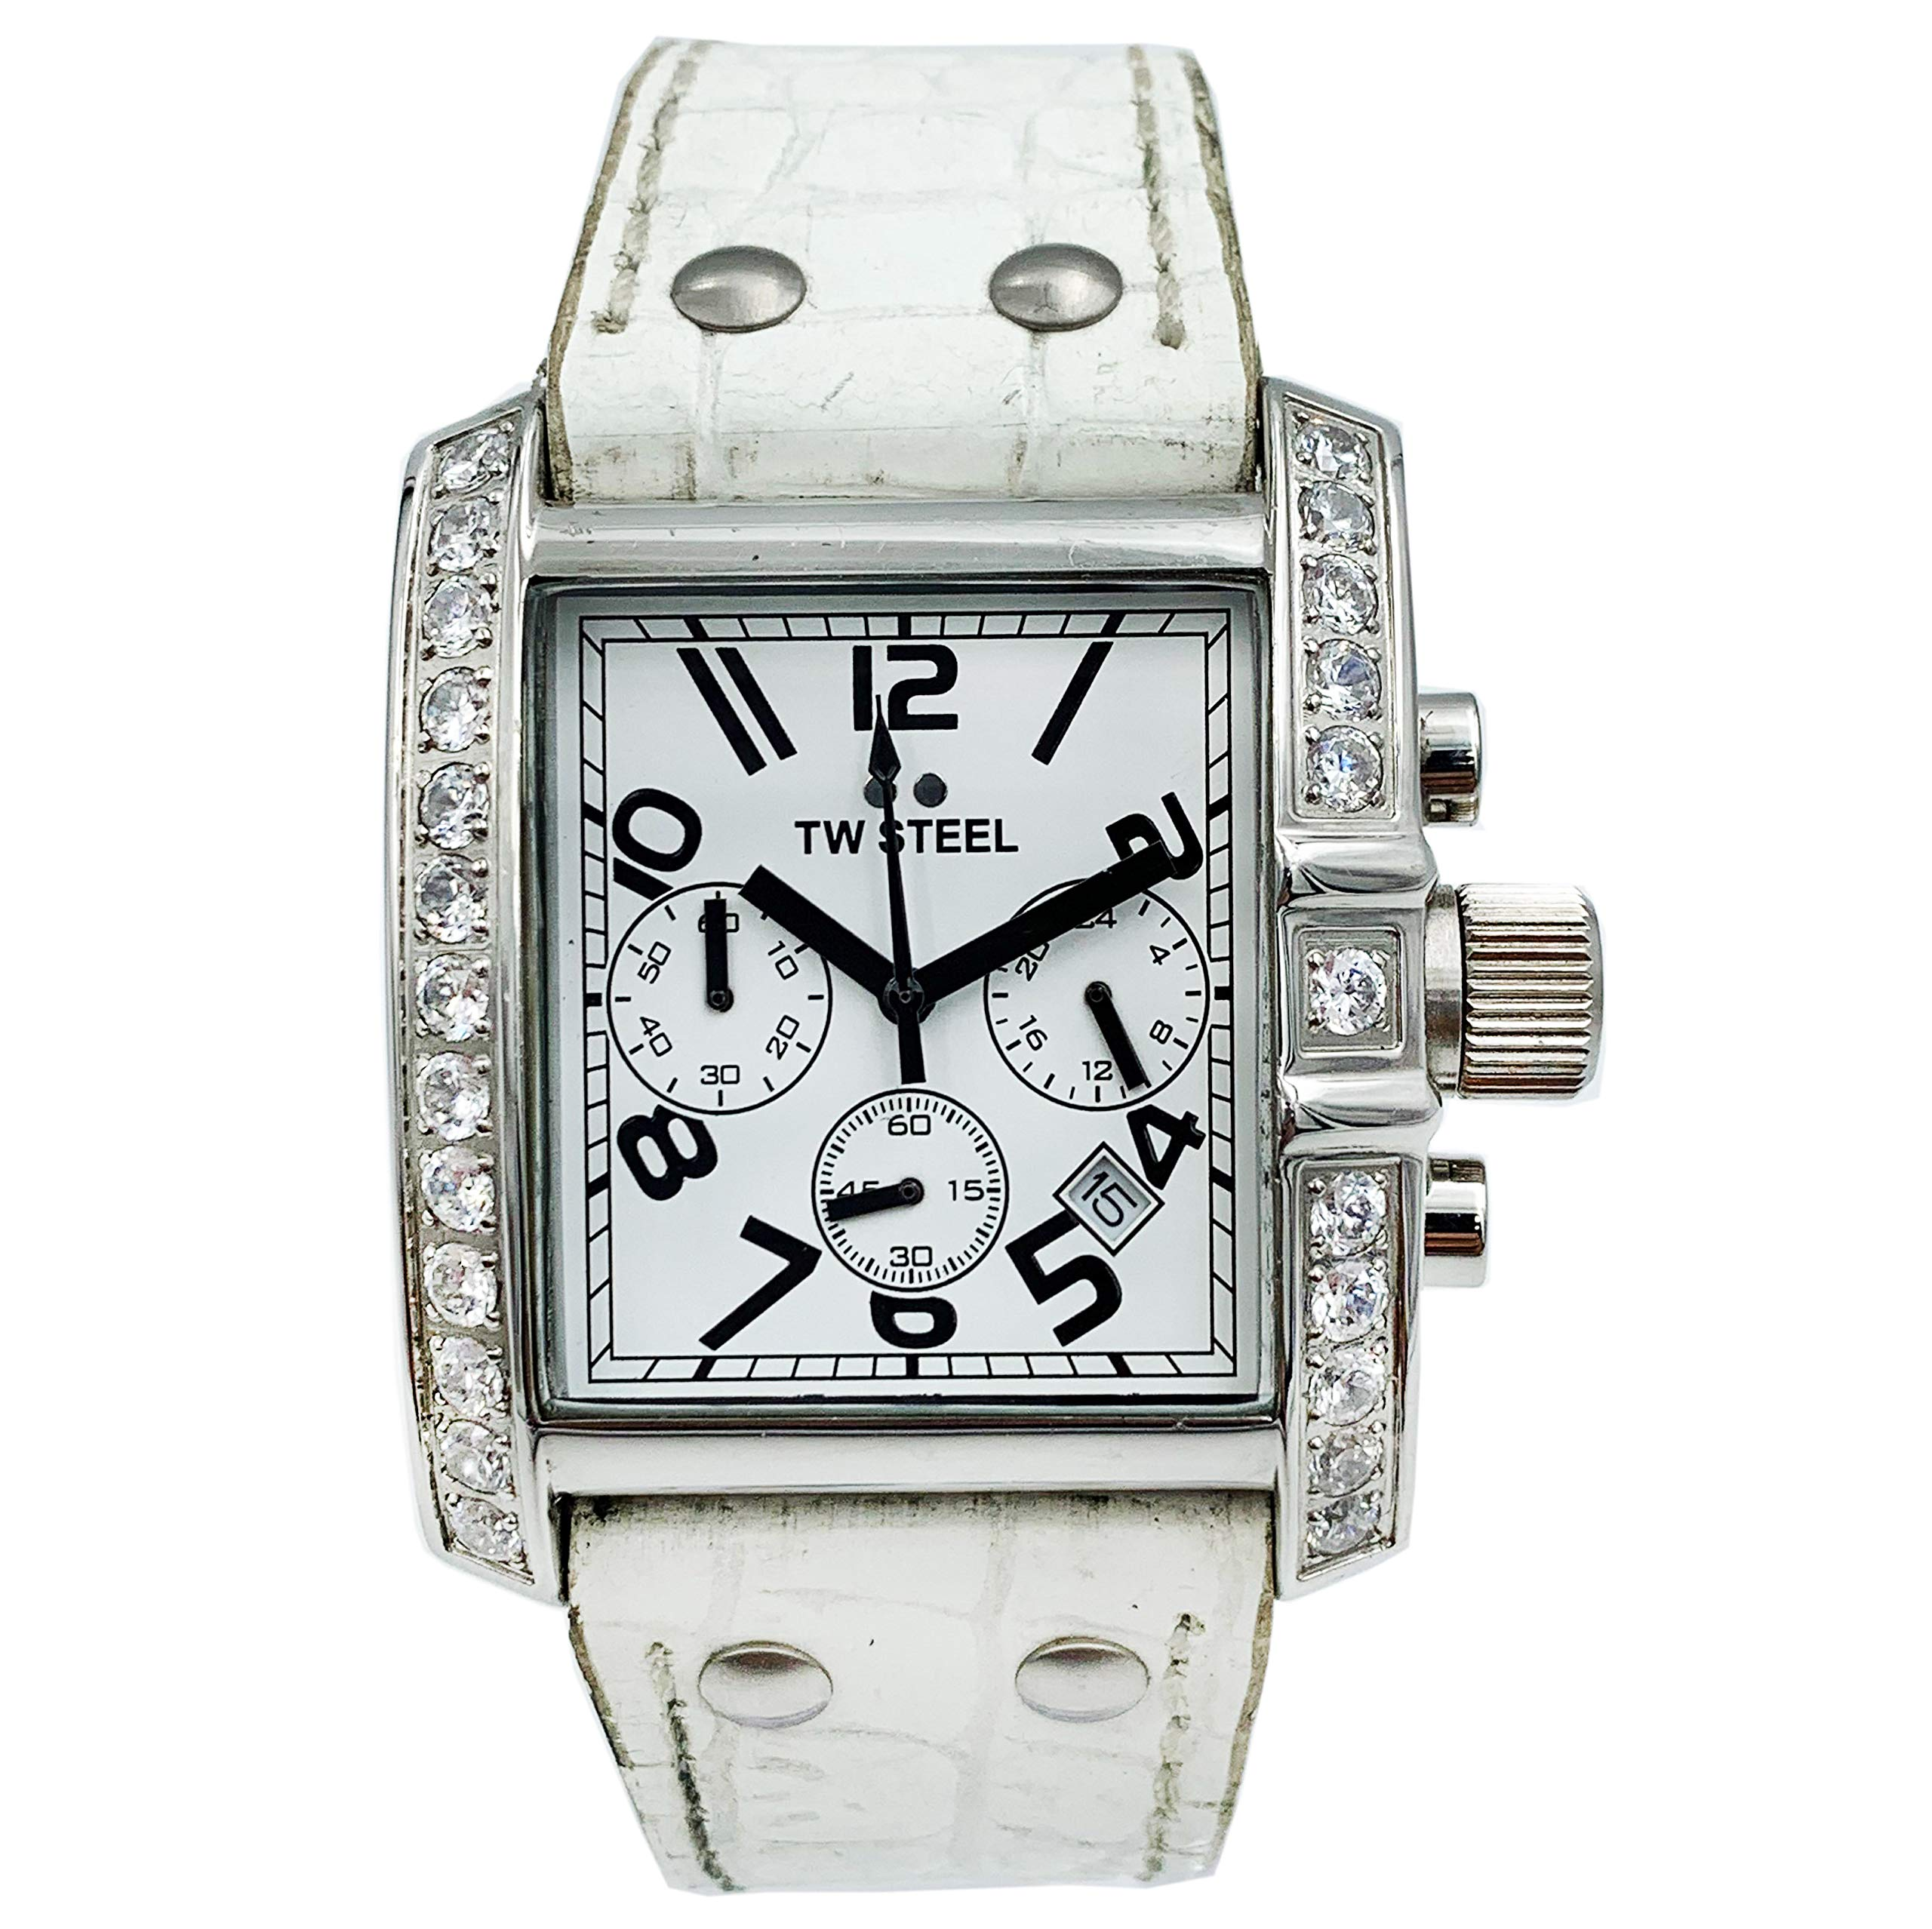 TW Steel Goliath Quartz Male Watch TW118 (Certified Pre-Owned)